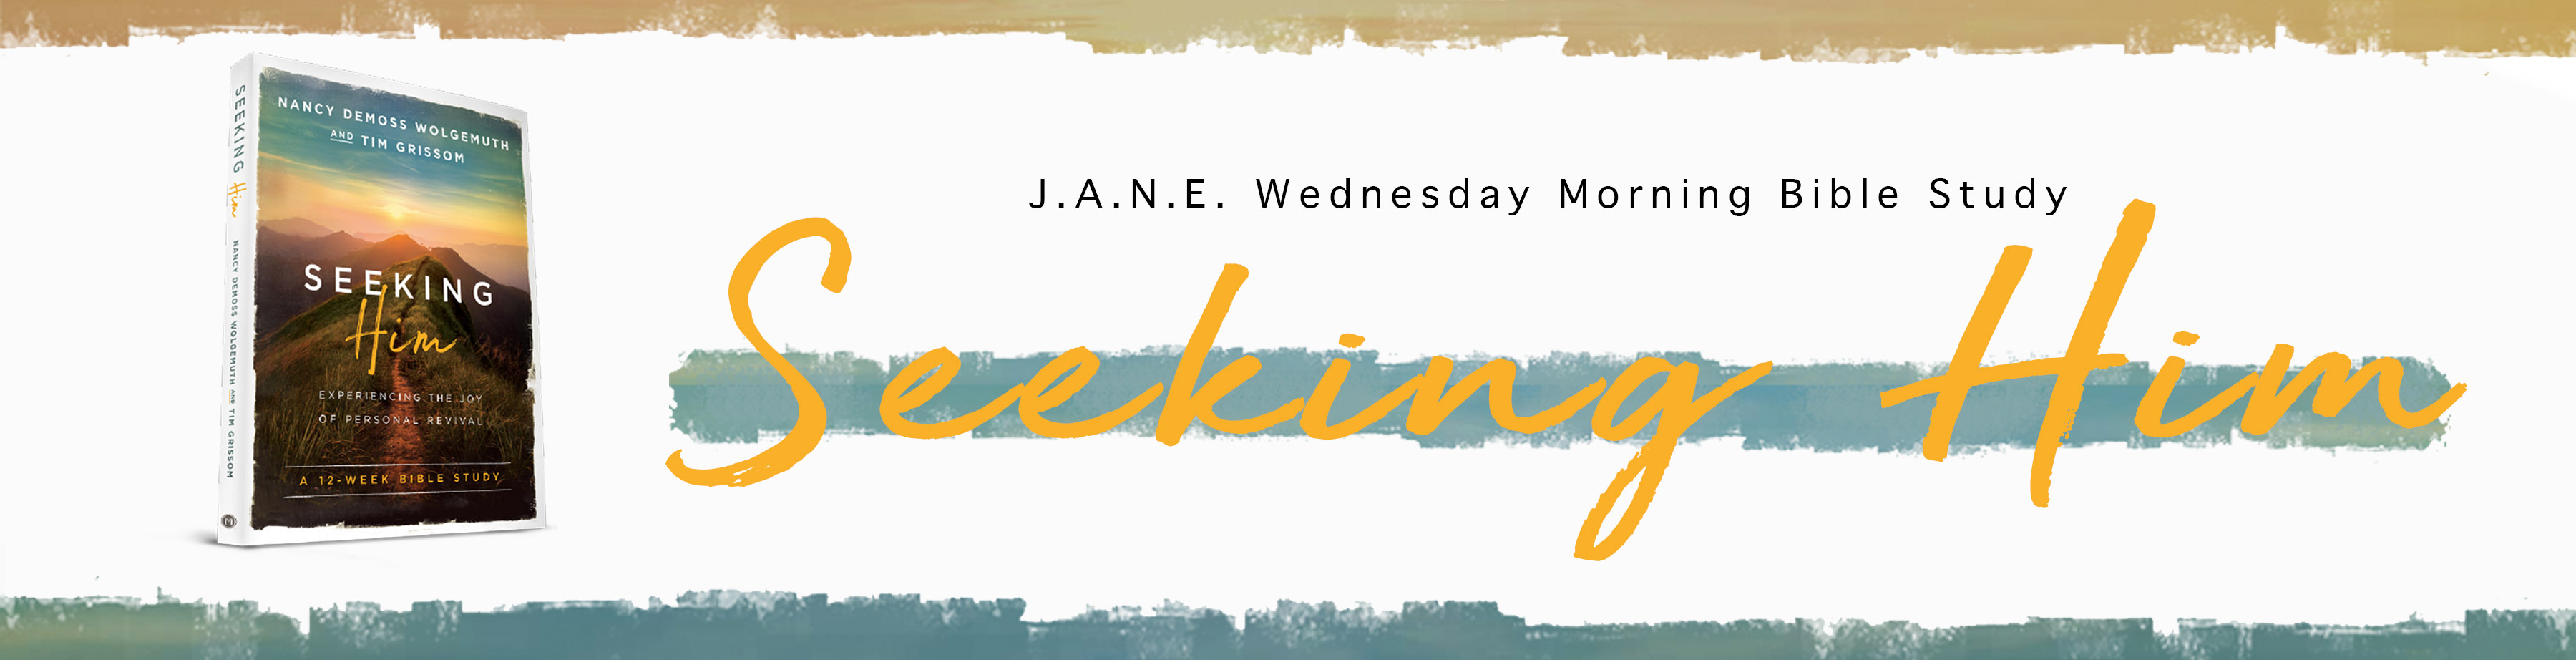 JANE_seeking_him__subheader image